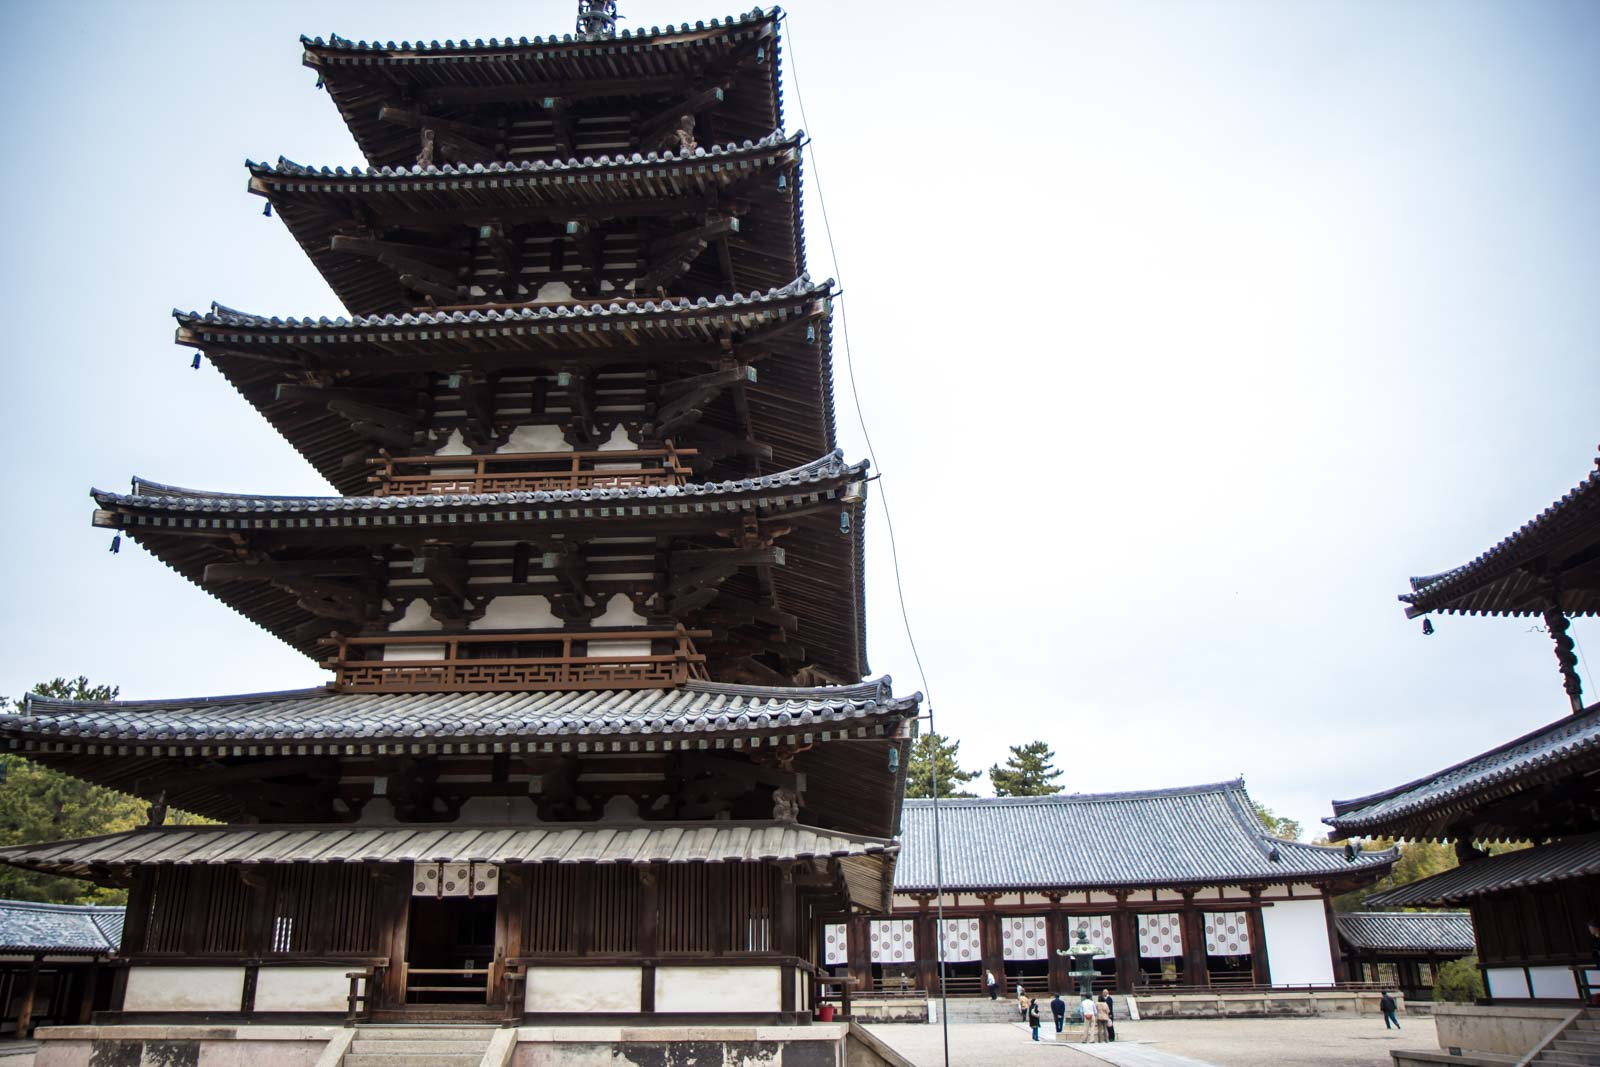 horyuji, japan, world's oldest wooden building, near nara, temple, history, world heritage, pagoda